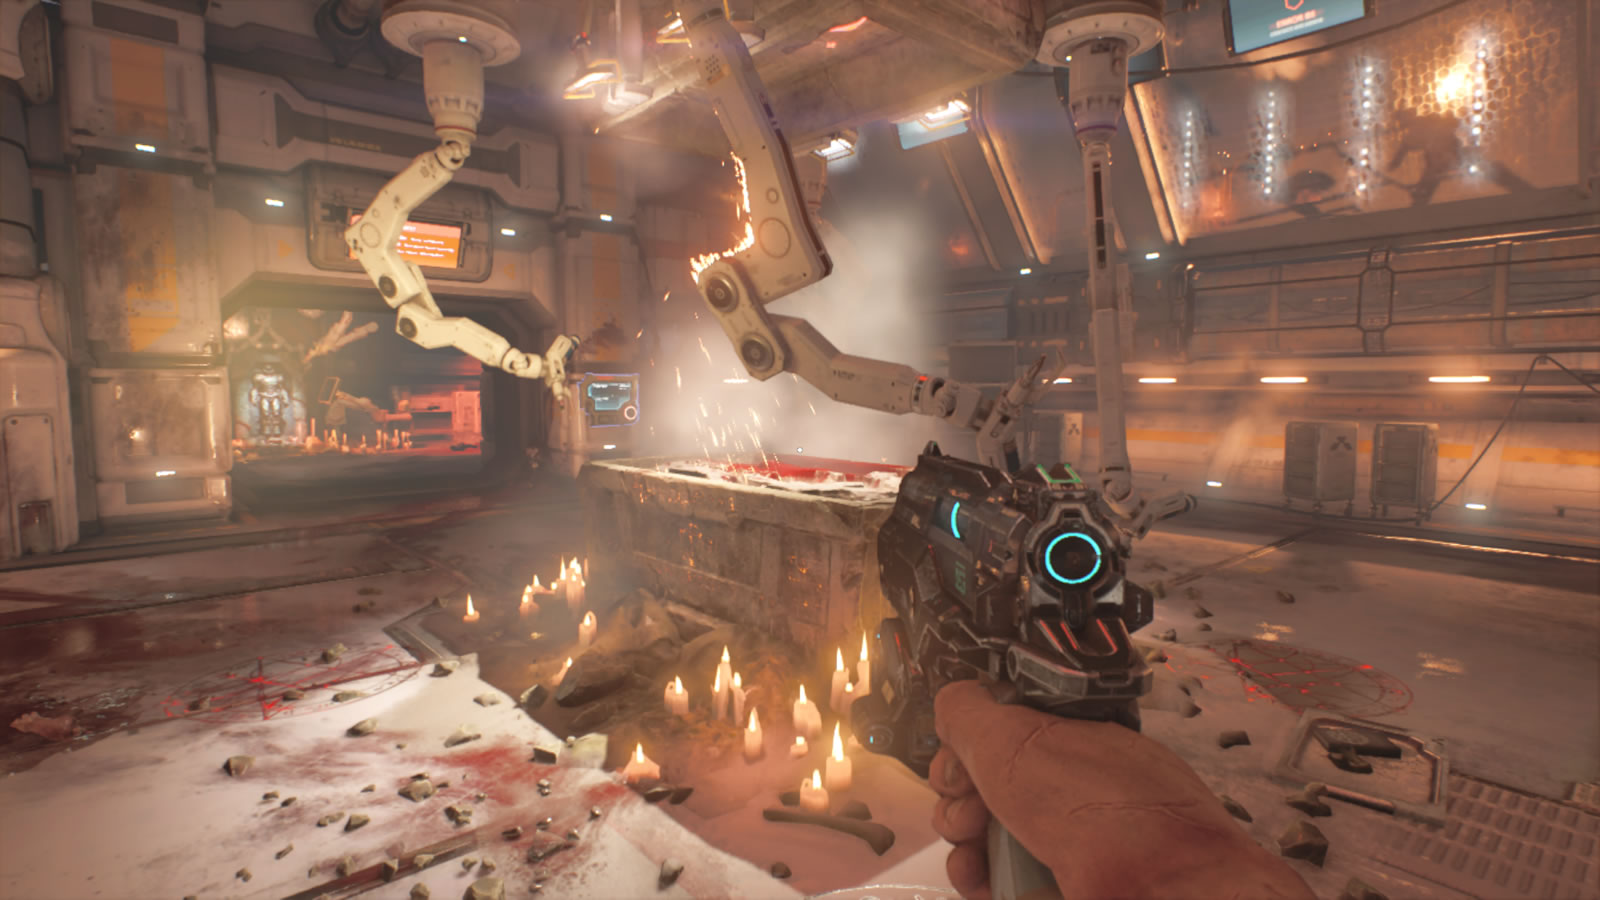 doom-2016-review-its-one-hell-of-a-game-xbox-one-01